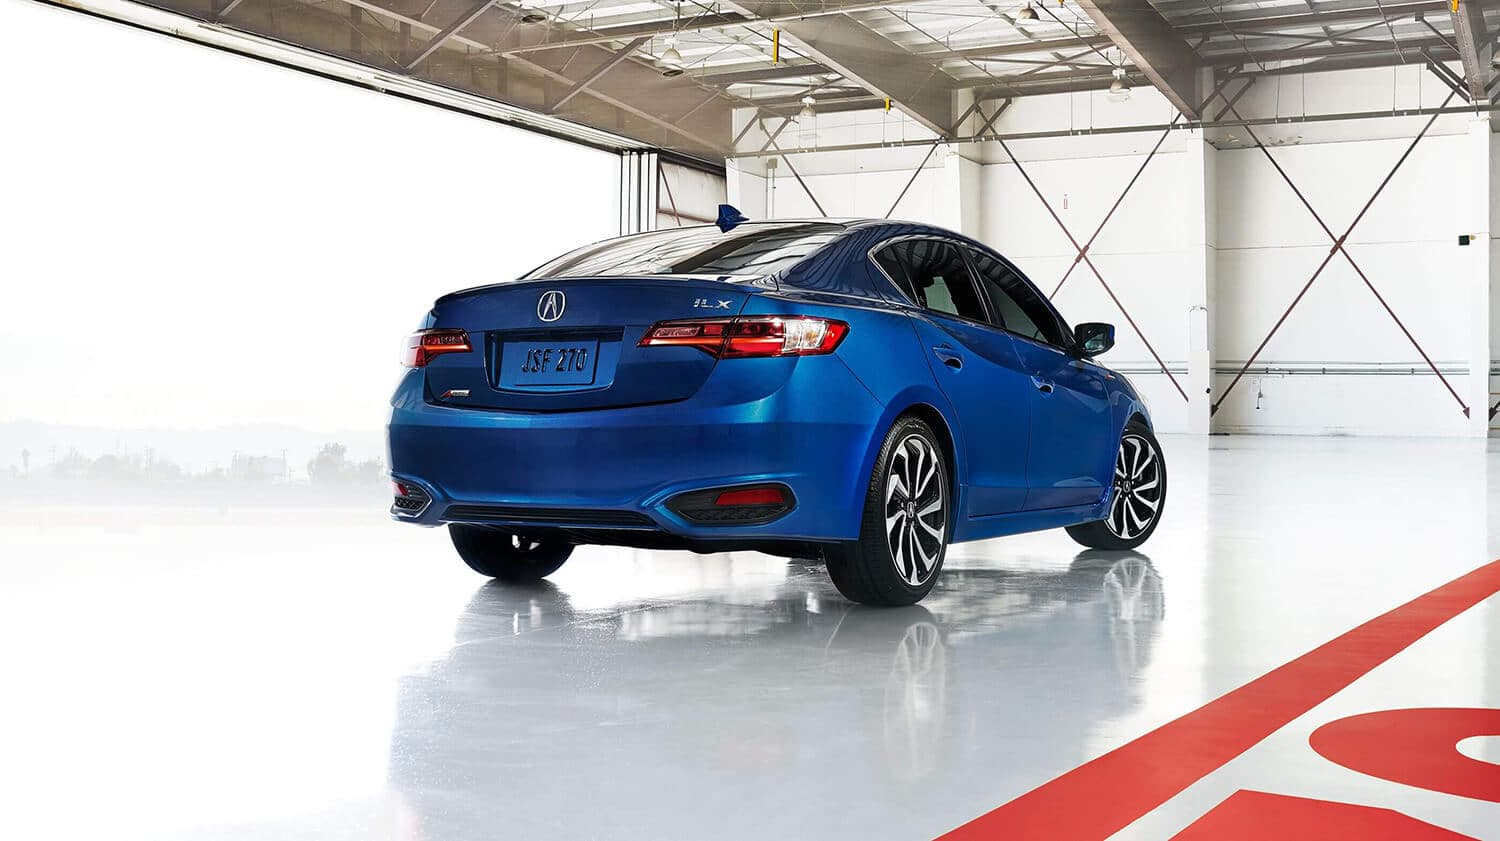 2018 Acura ILX Exterior Rear Angle Passenger Side